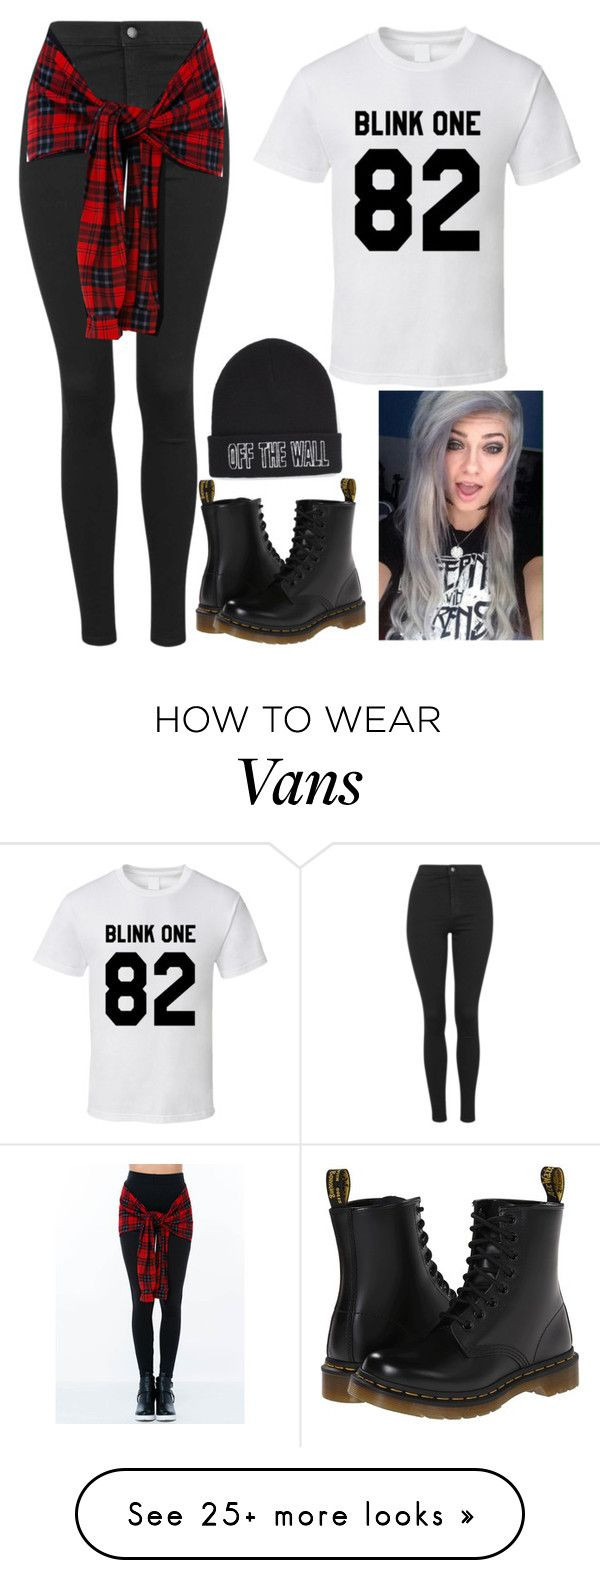 """Untitled #385"" by slowlygivingup724 on Polyvore featuring Topshop, Dr. Martens, Vans, women's clothing, women, female, woman, misses and juniors"